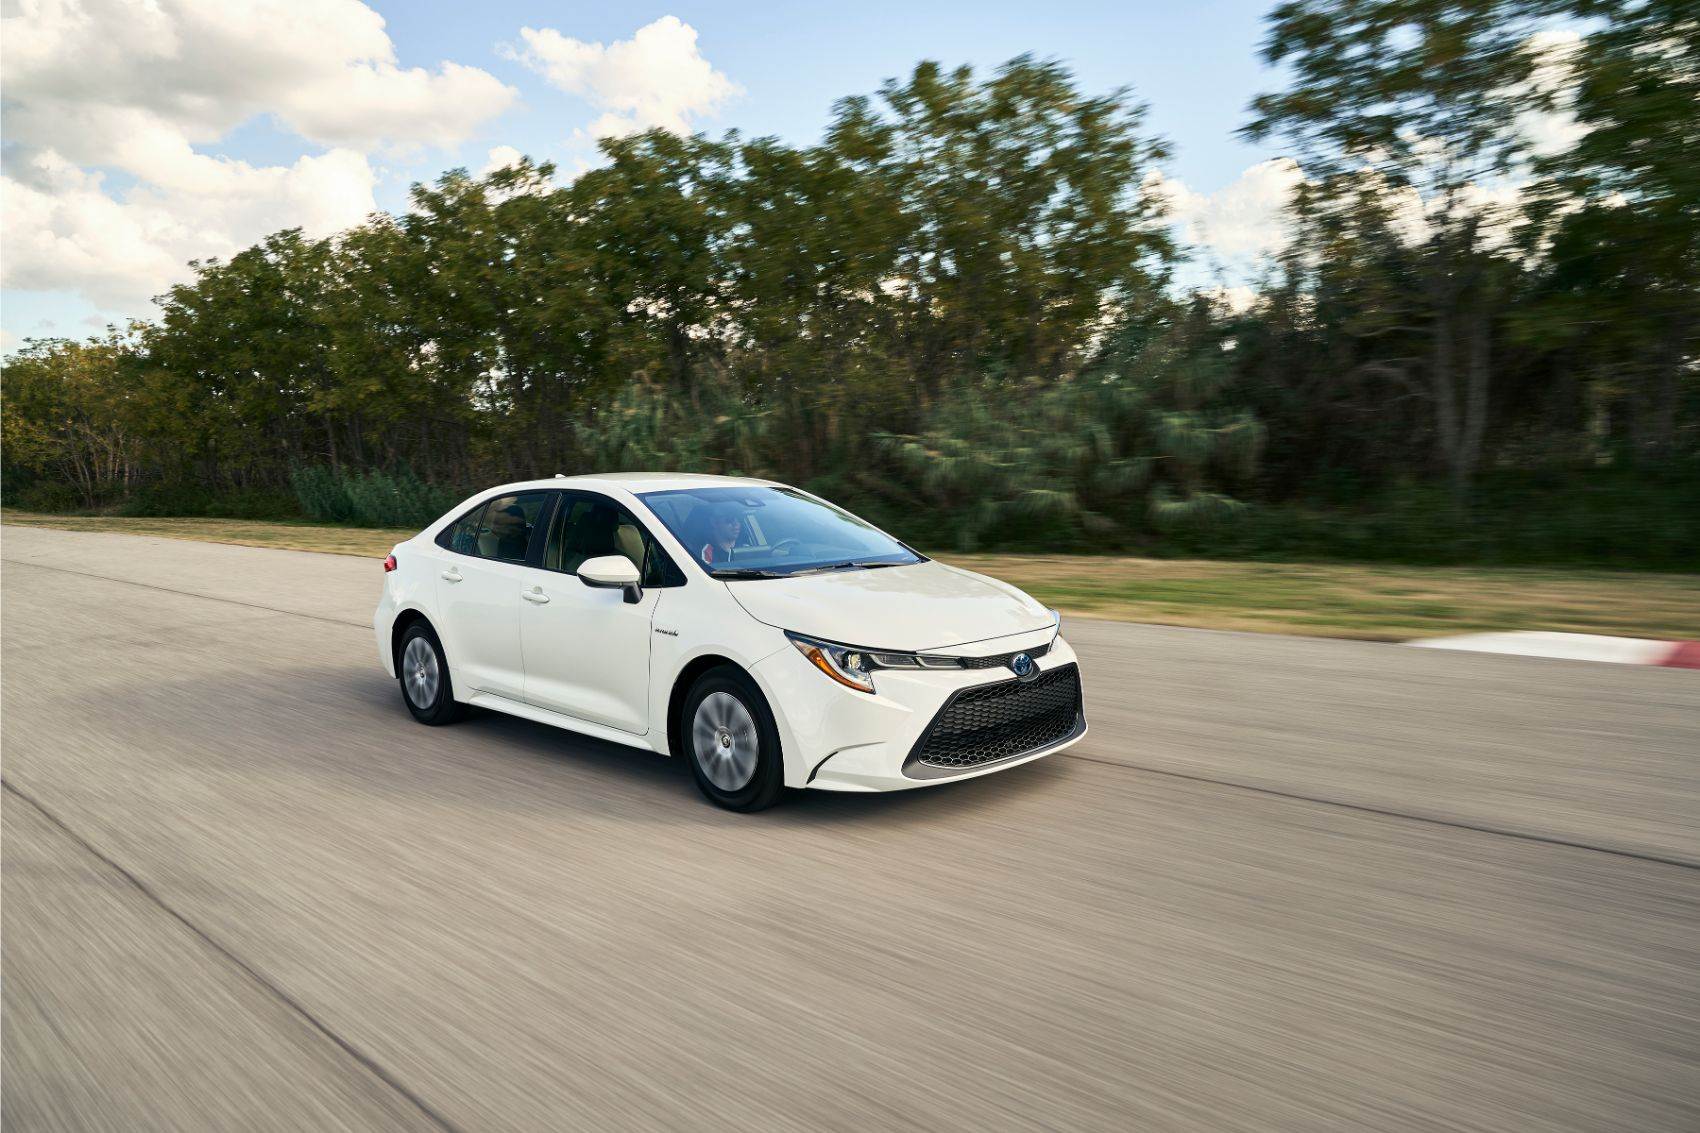 2020 Toyota Corolla Hybrid Review: We Skipped The Gas Station 15